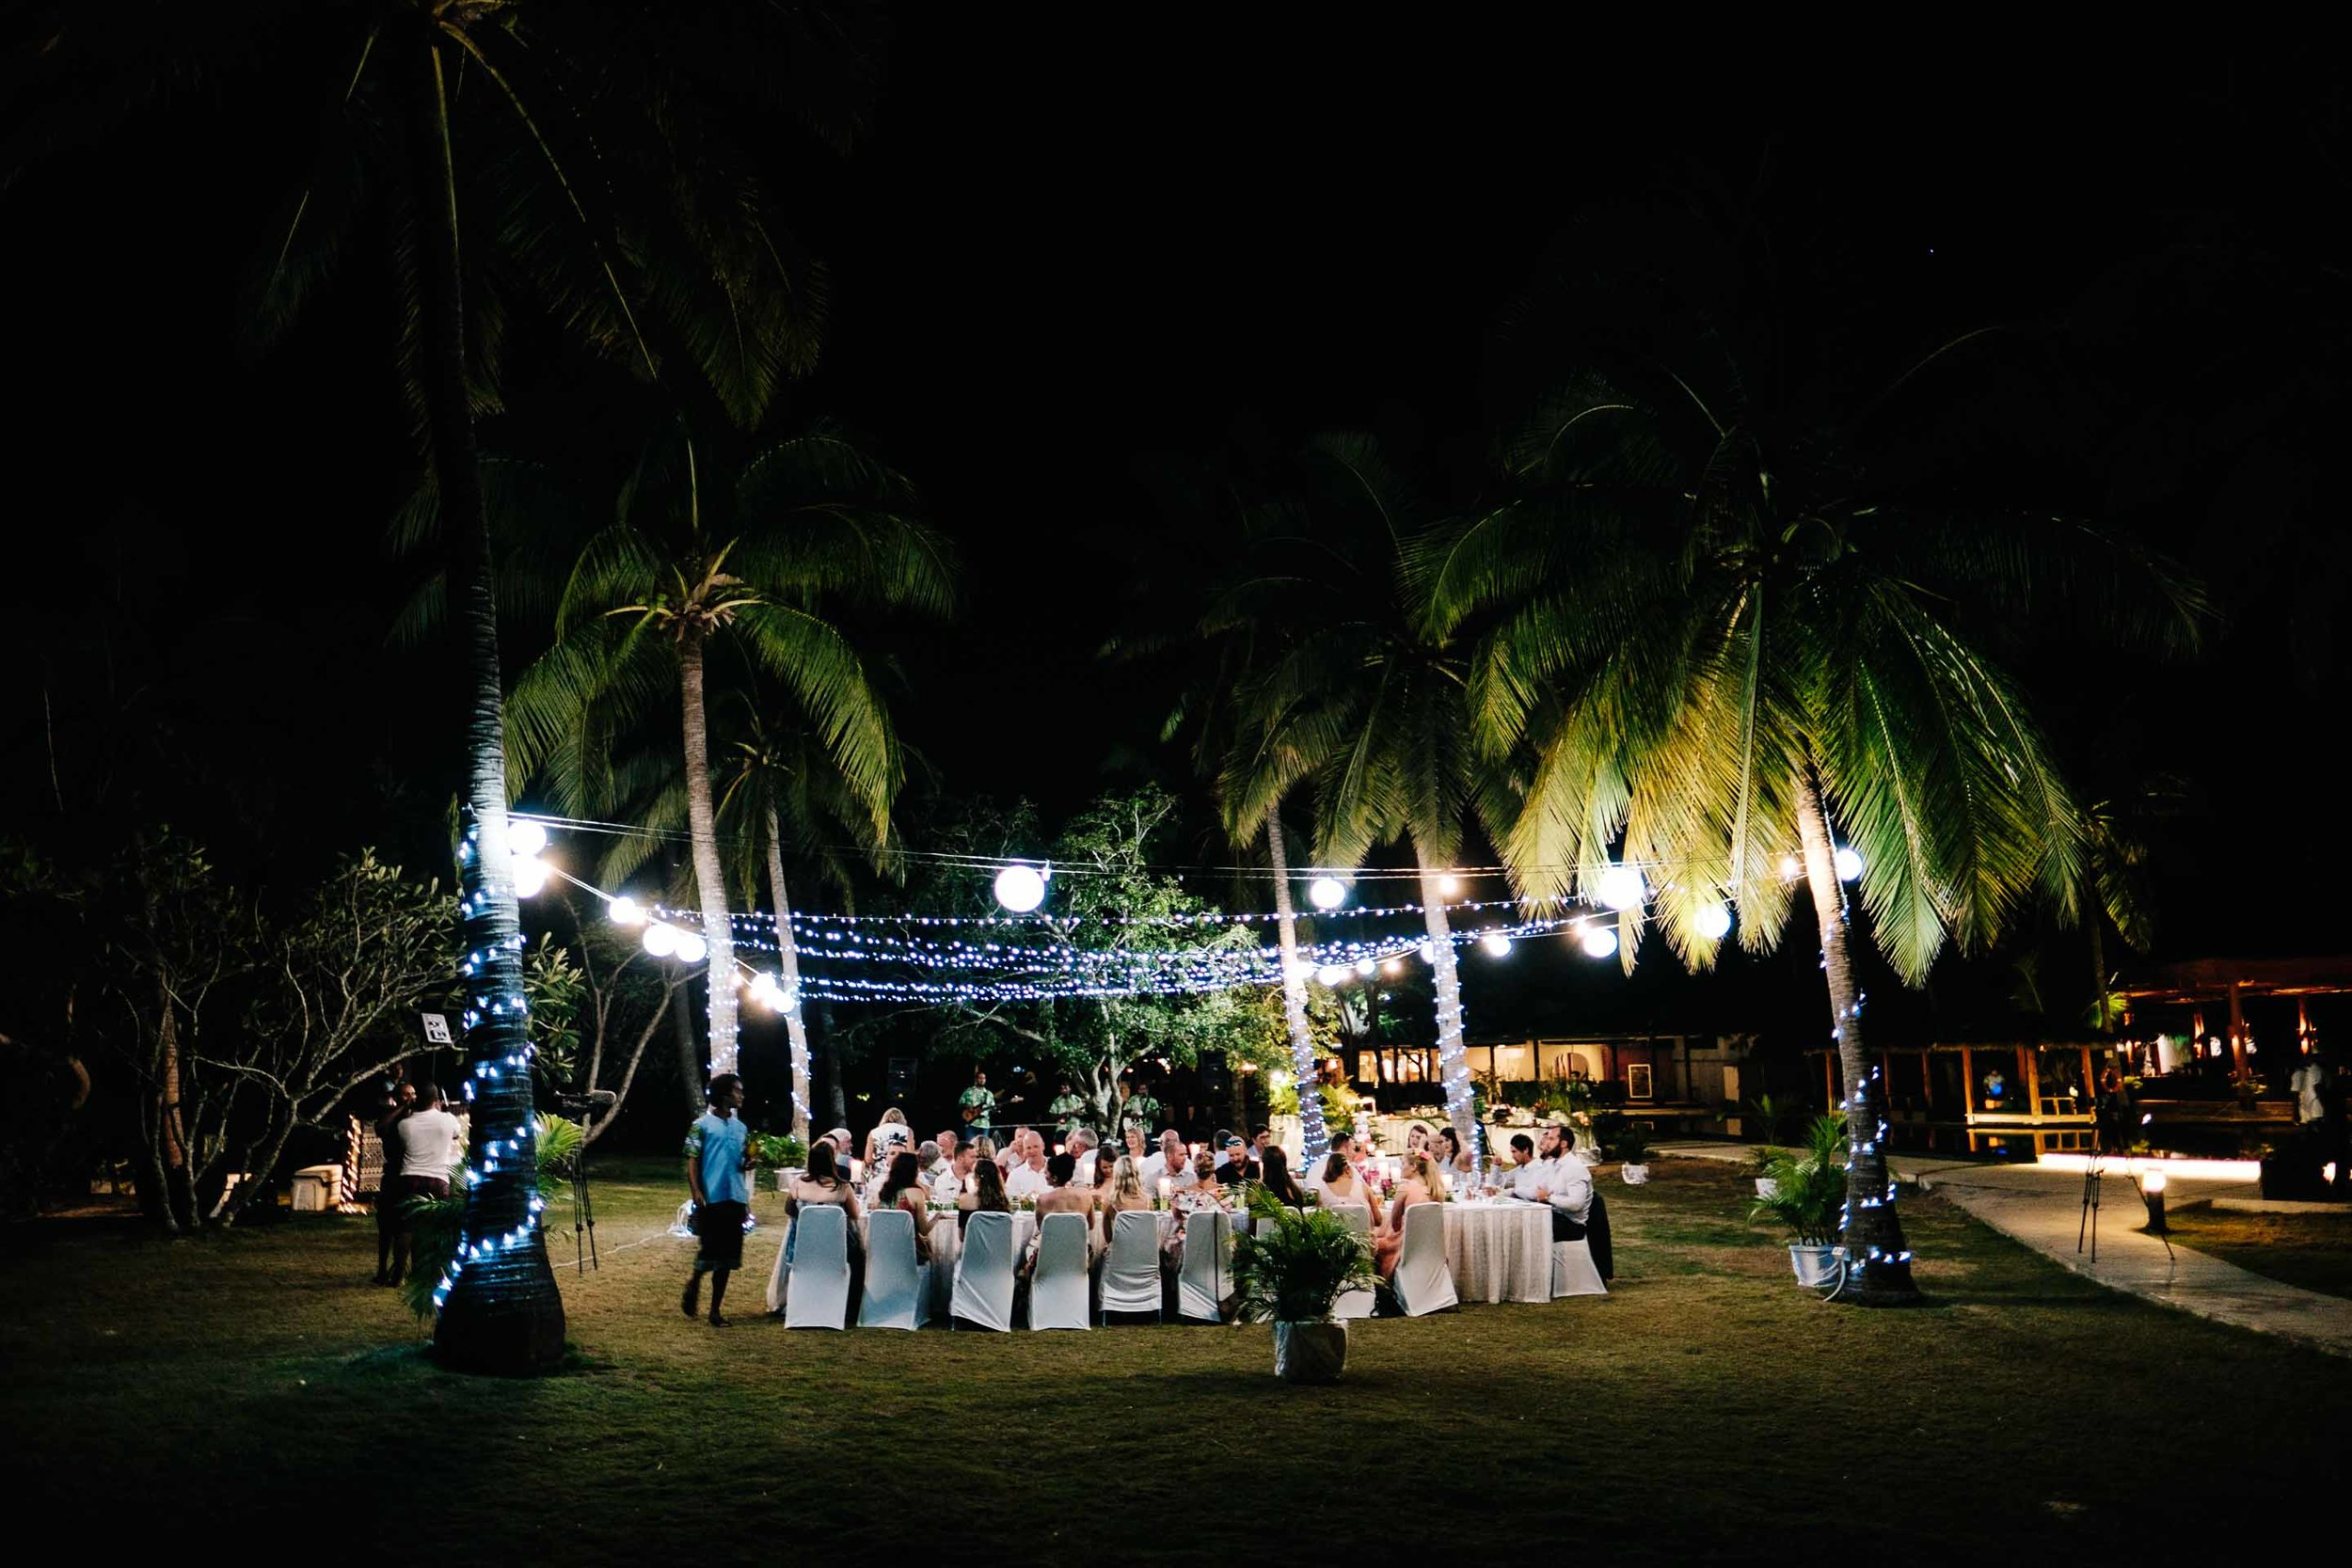 the wedding reception held under the trees by the beach at Lomani Island Resort